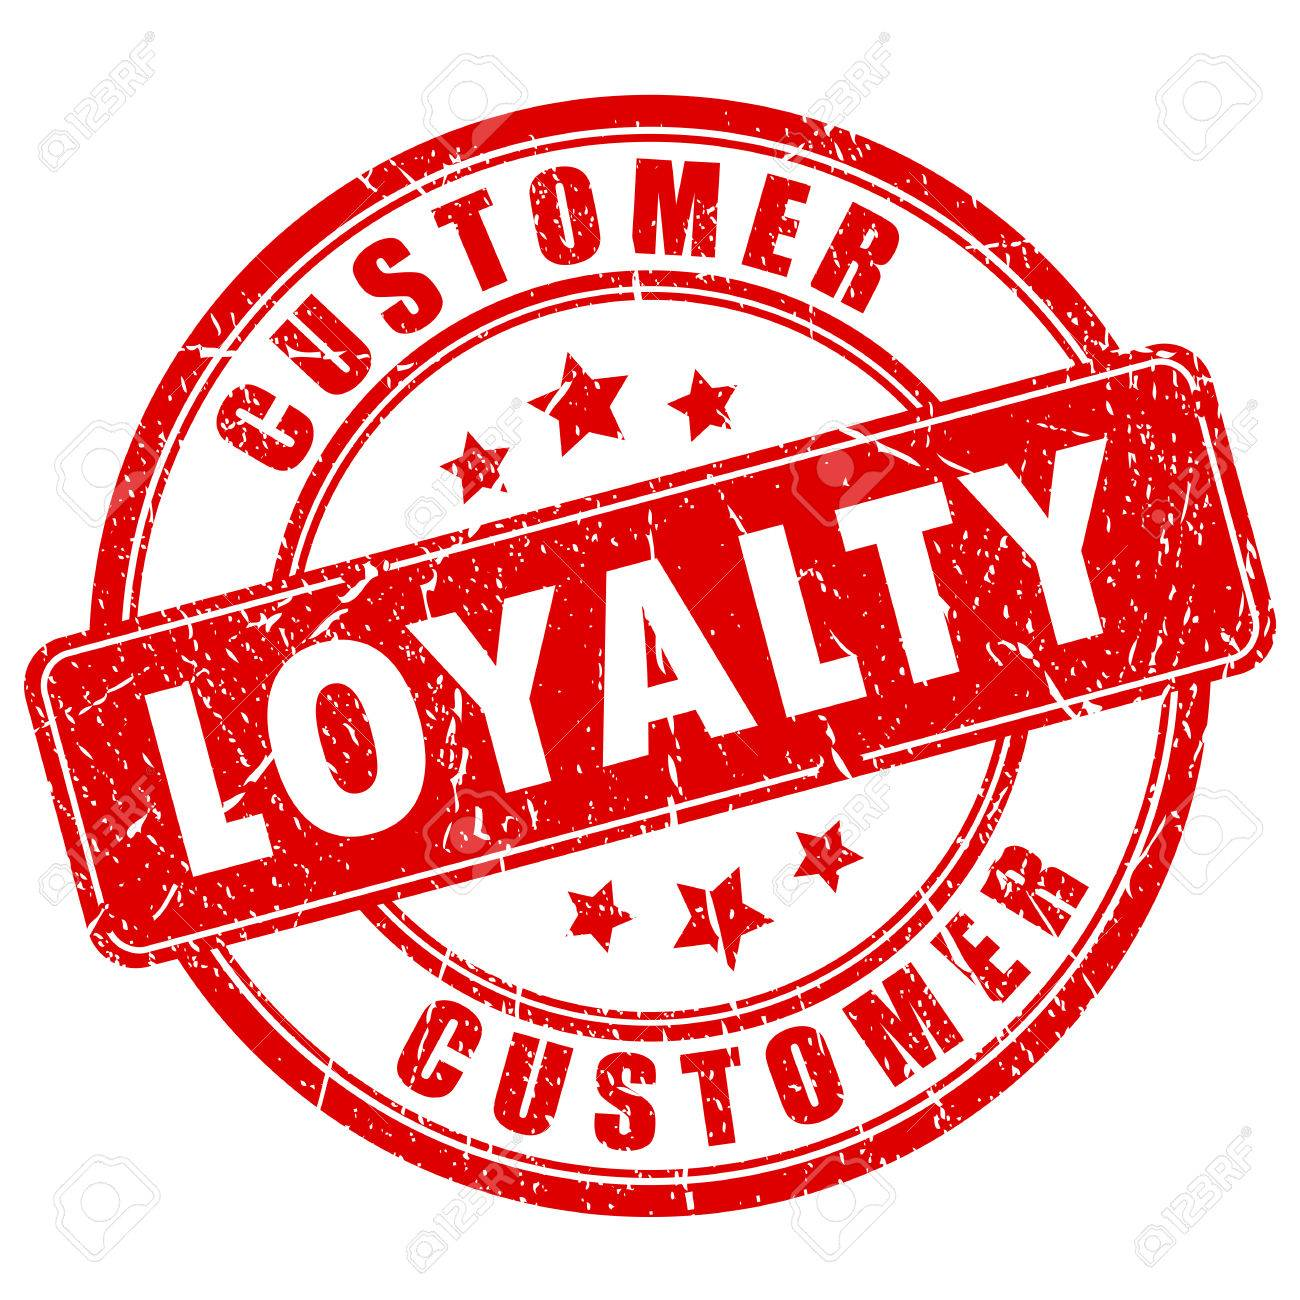 Customer loyalty ink business stamp - 78256503